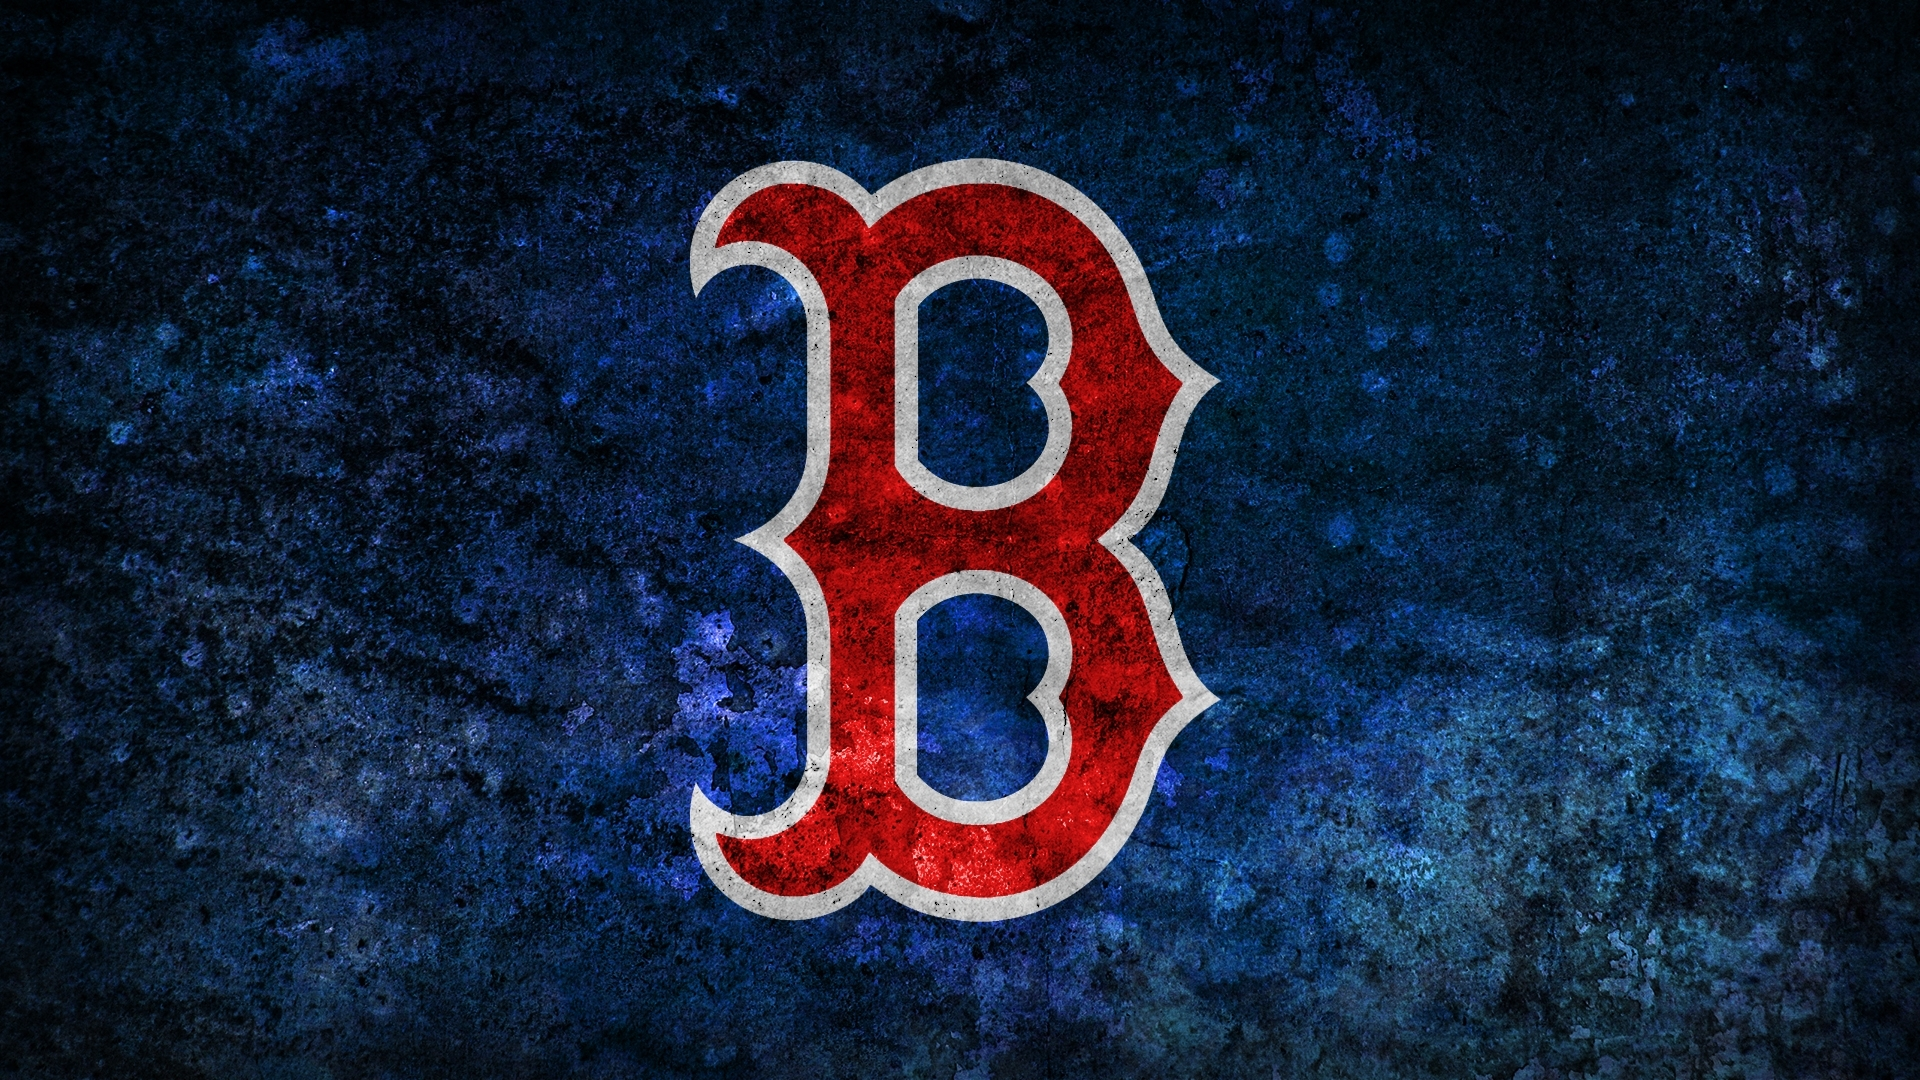 boston-red-sox-logo-wallpaper - wallpaper.wiki